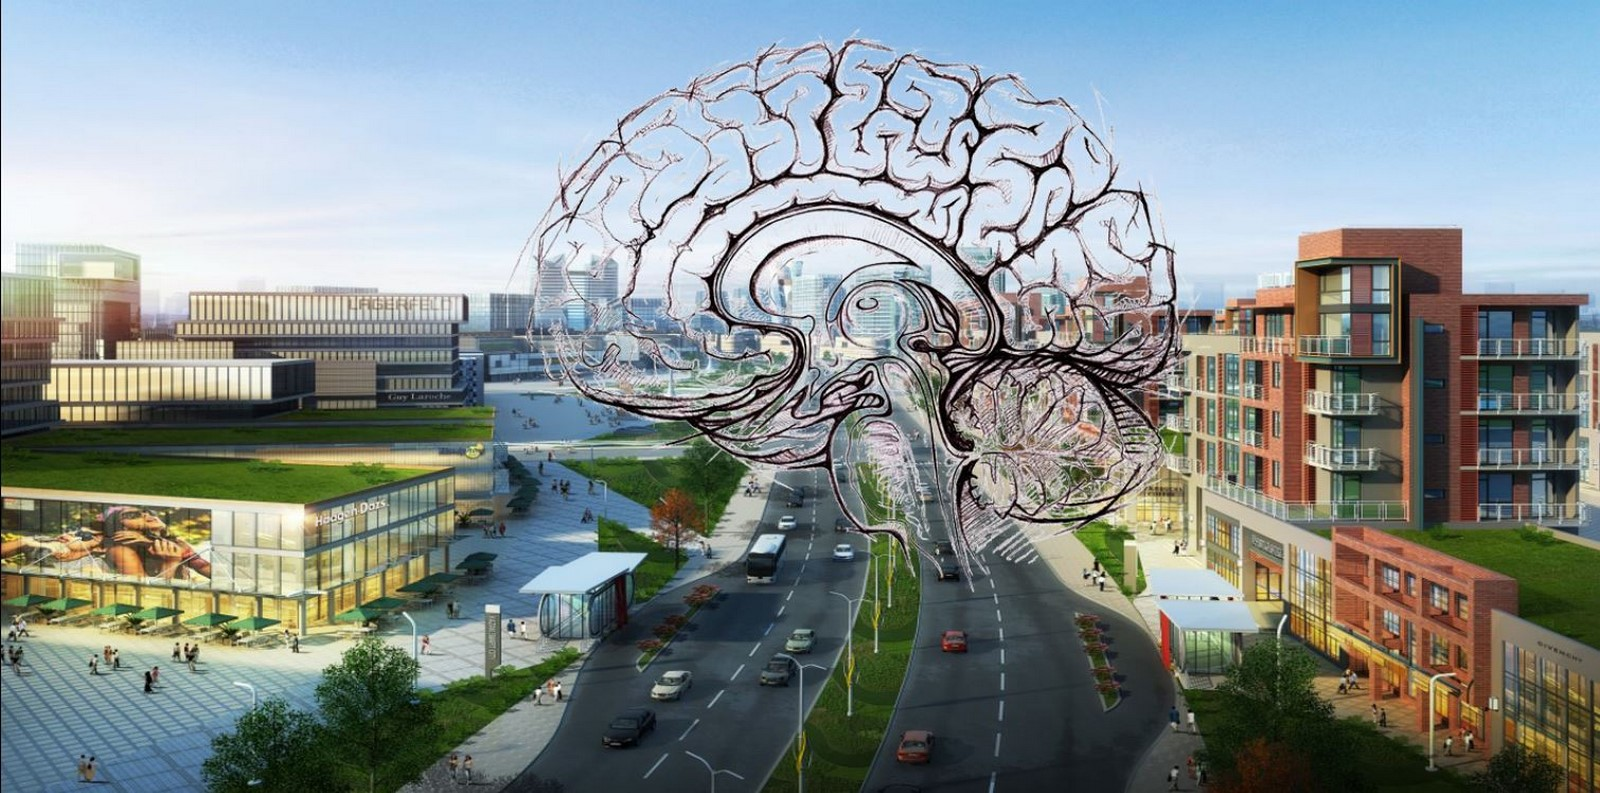 How to better understand spaces through the study of neuroarchitecture? - Sheet2